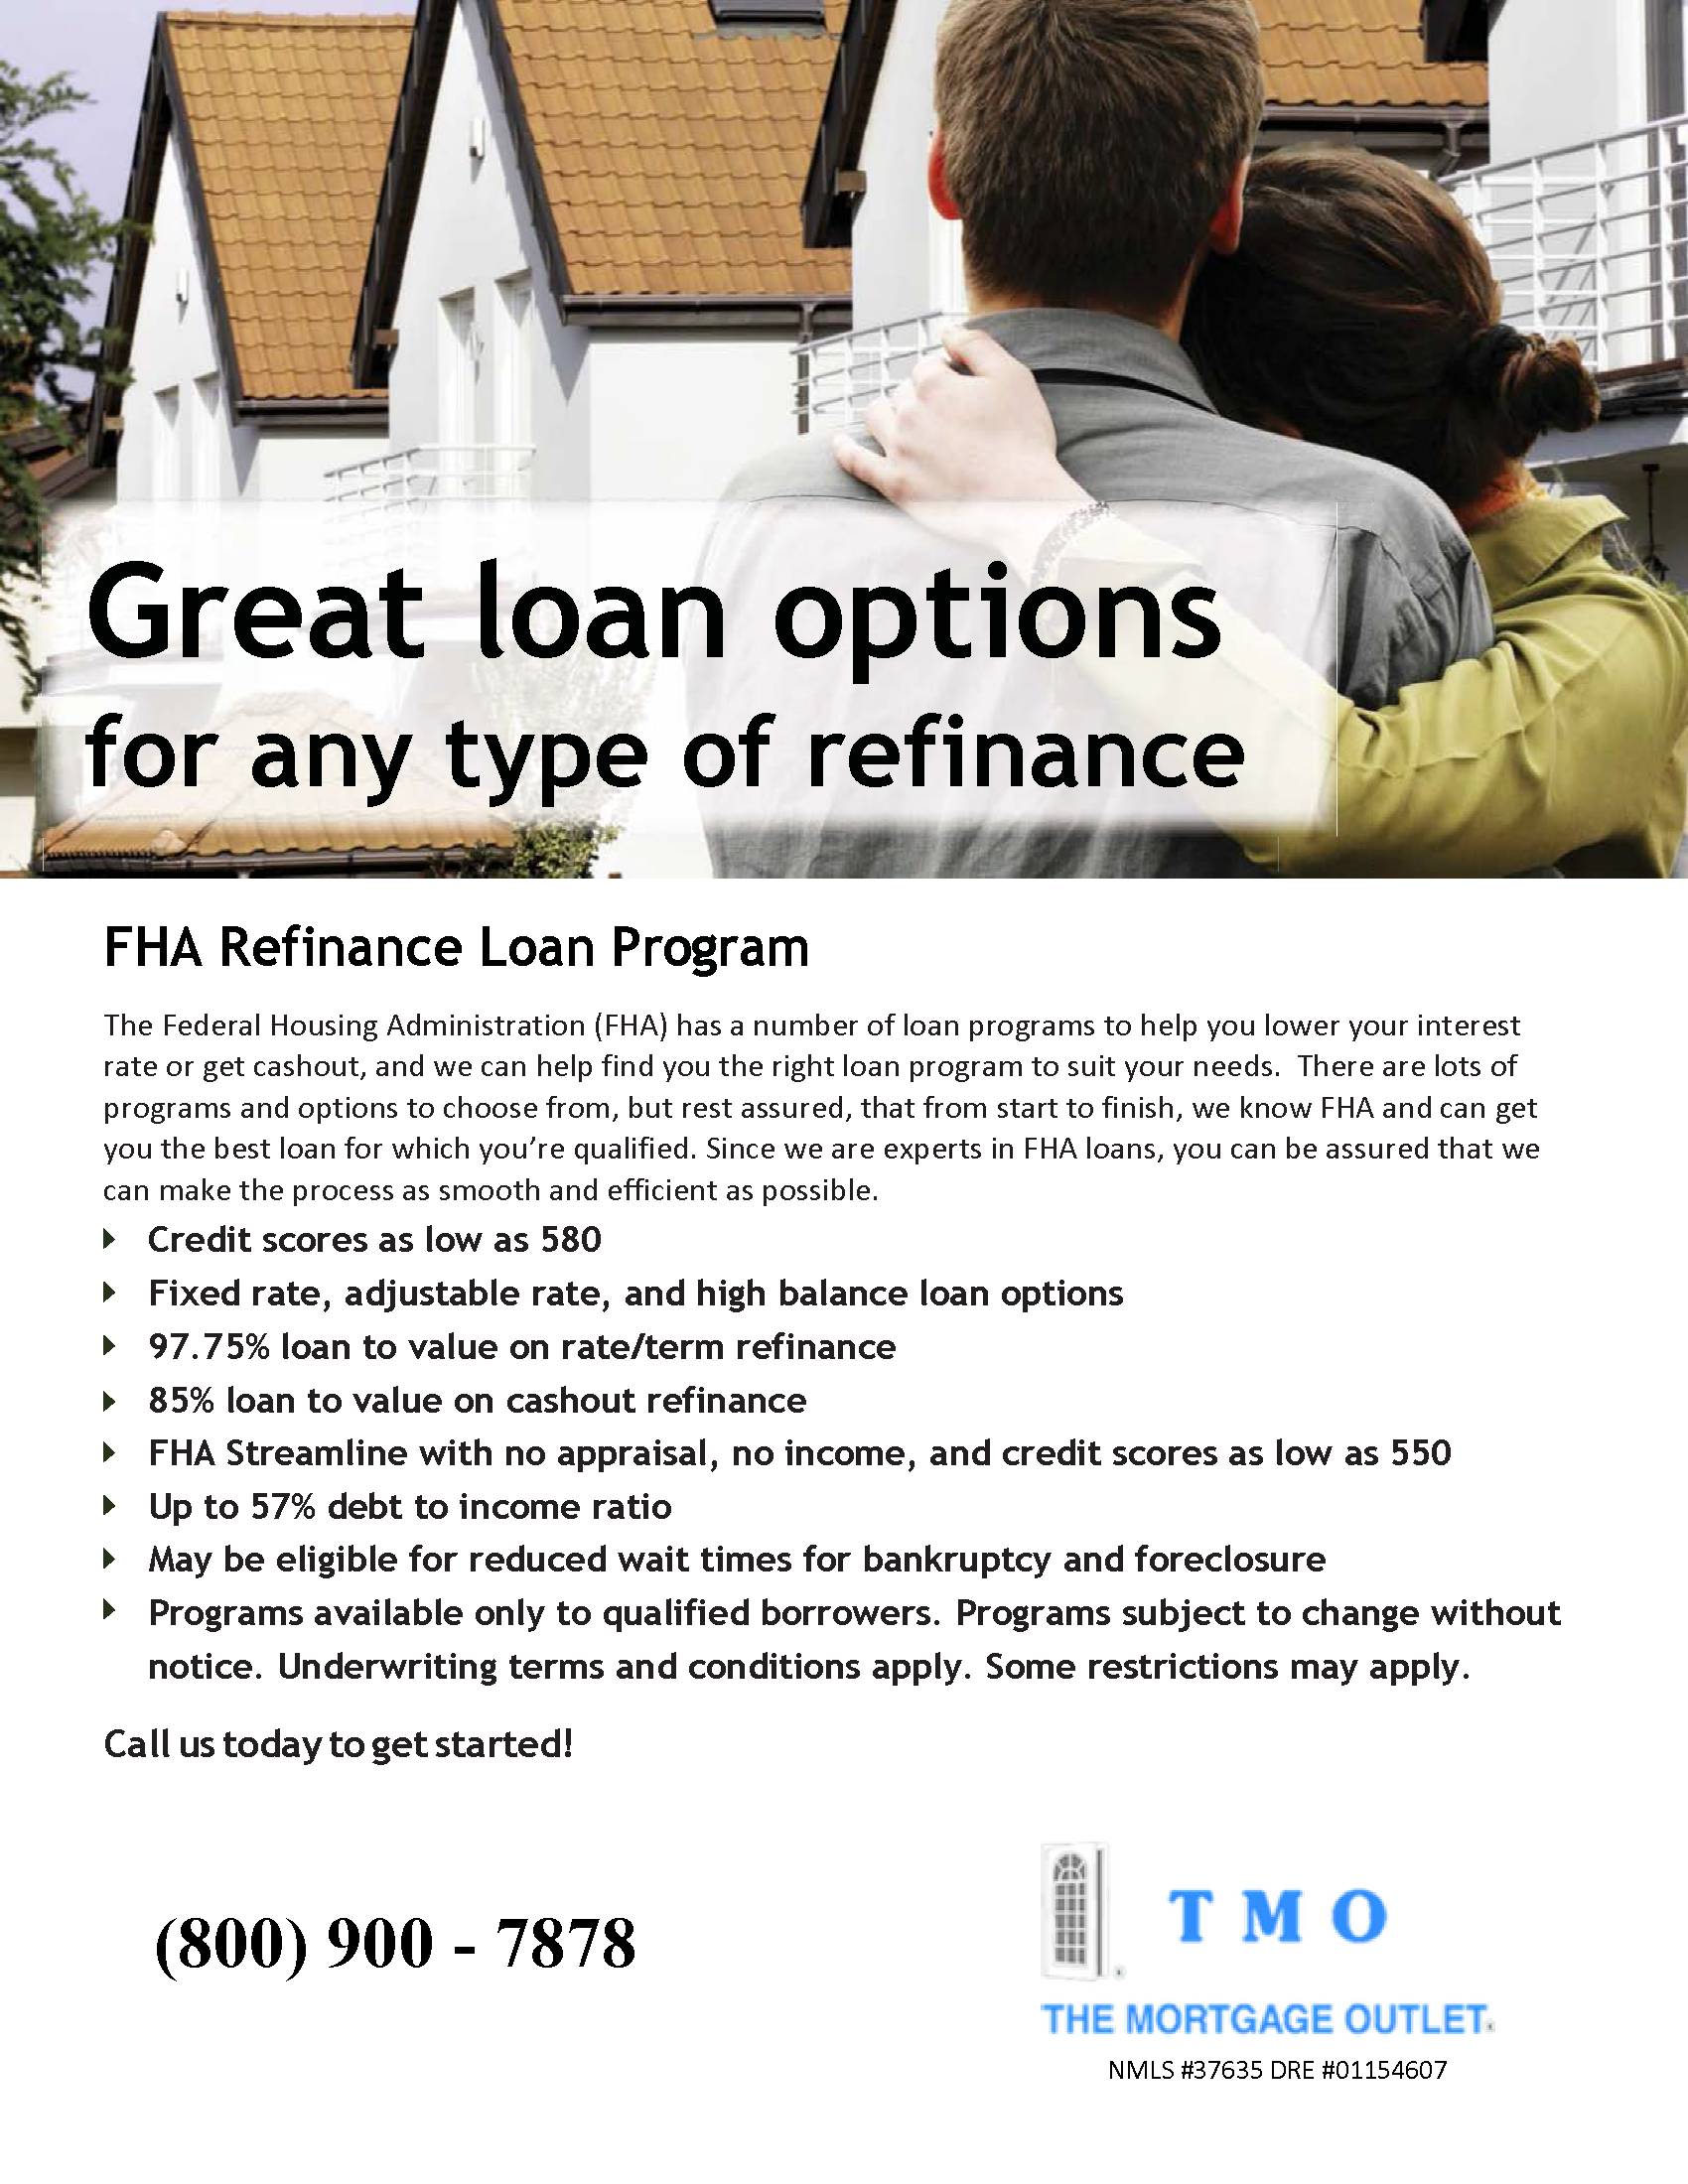 Website FHA Refinance